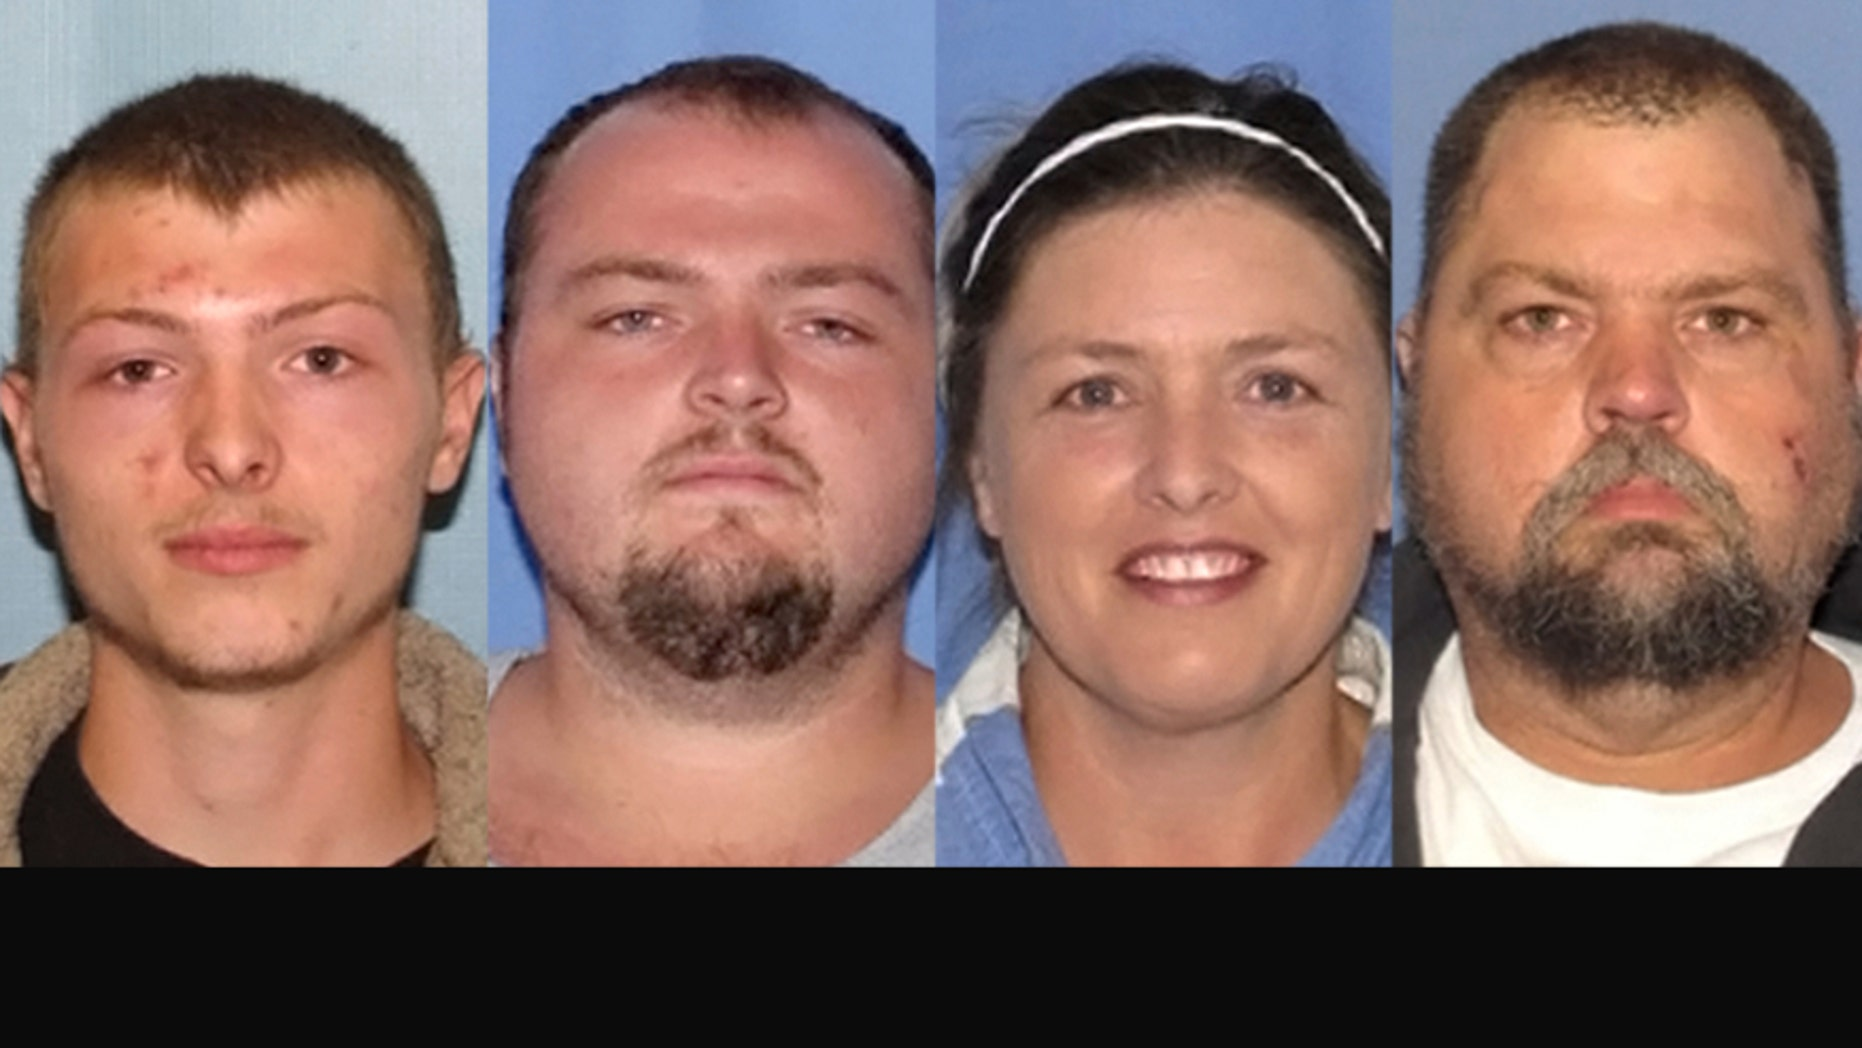 """From left to right: Edward """"Jake"""" Wagner, George Wagner IV, Angela Wagner, and George """"Billy"""" Wagner III."""